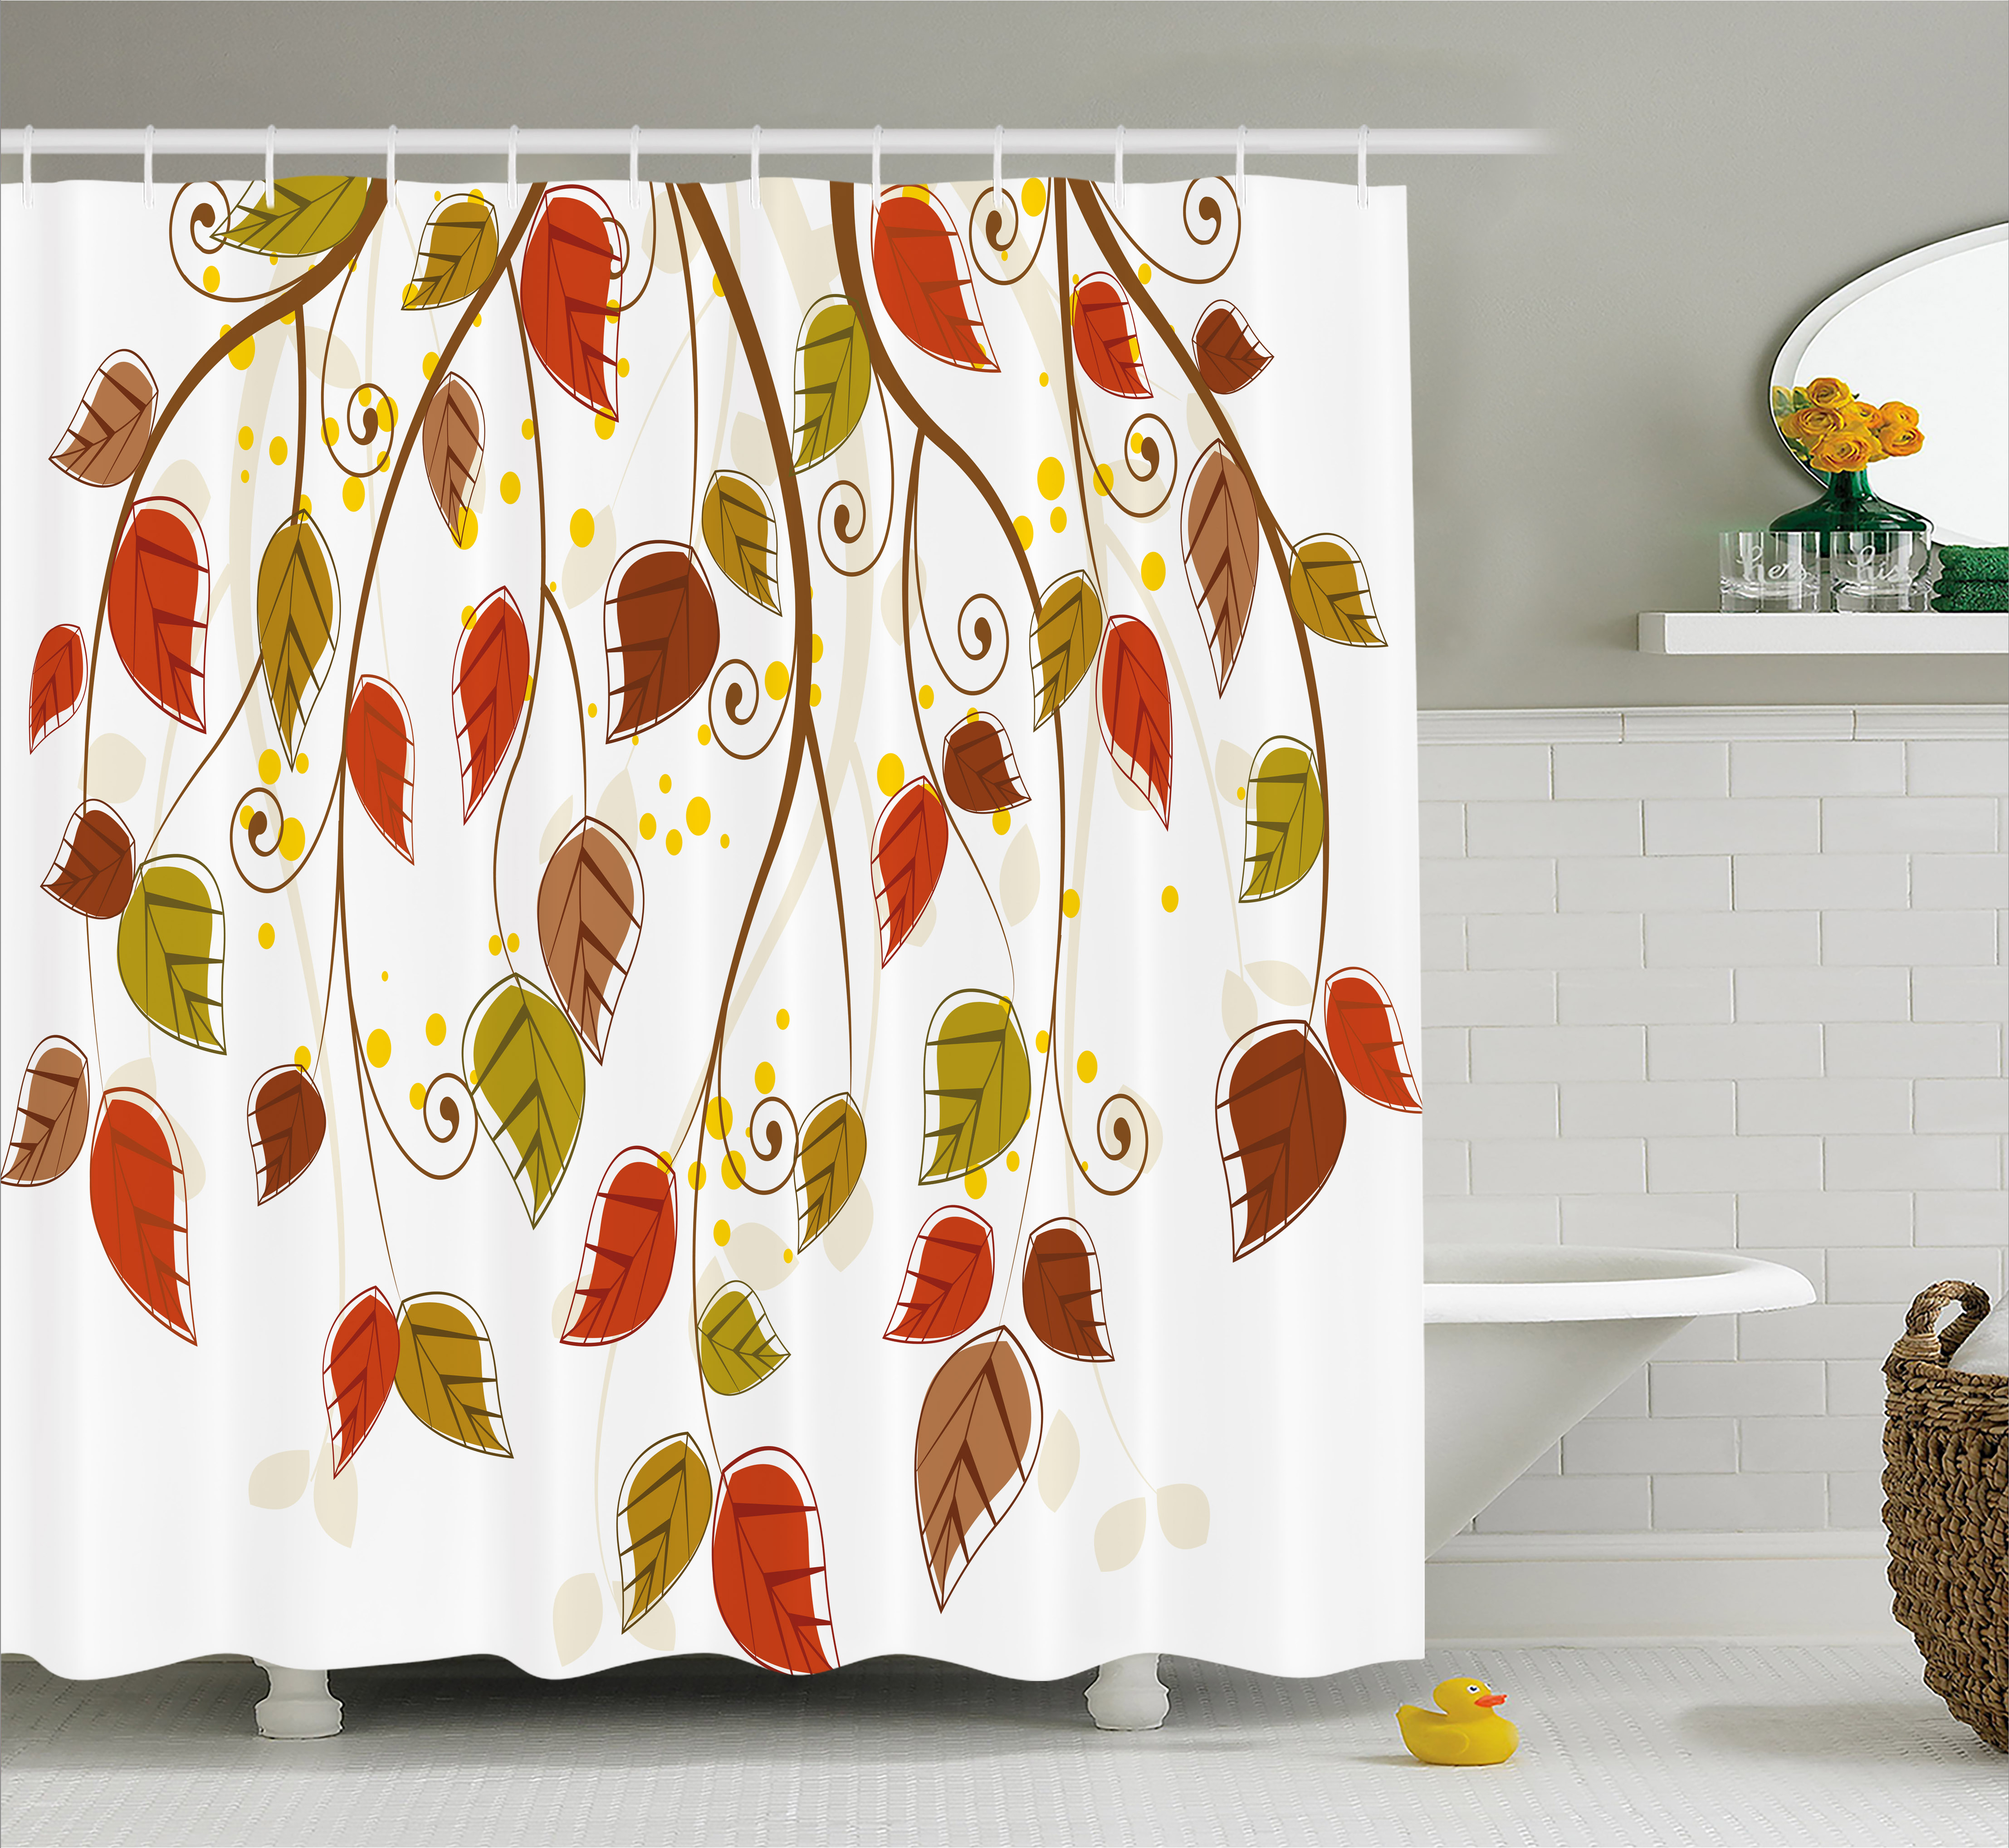 Autumn Shower Curtain, Branches With Fall Leaves Seasonal Colors Nature  Environment Foliage, Fabric Bathroom